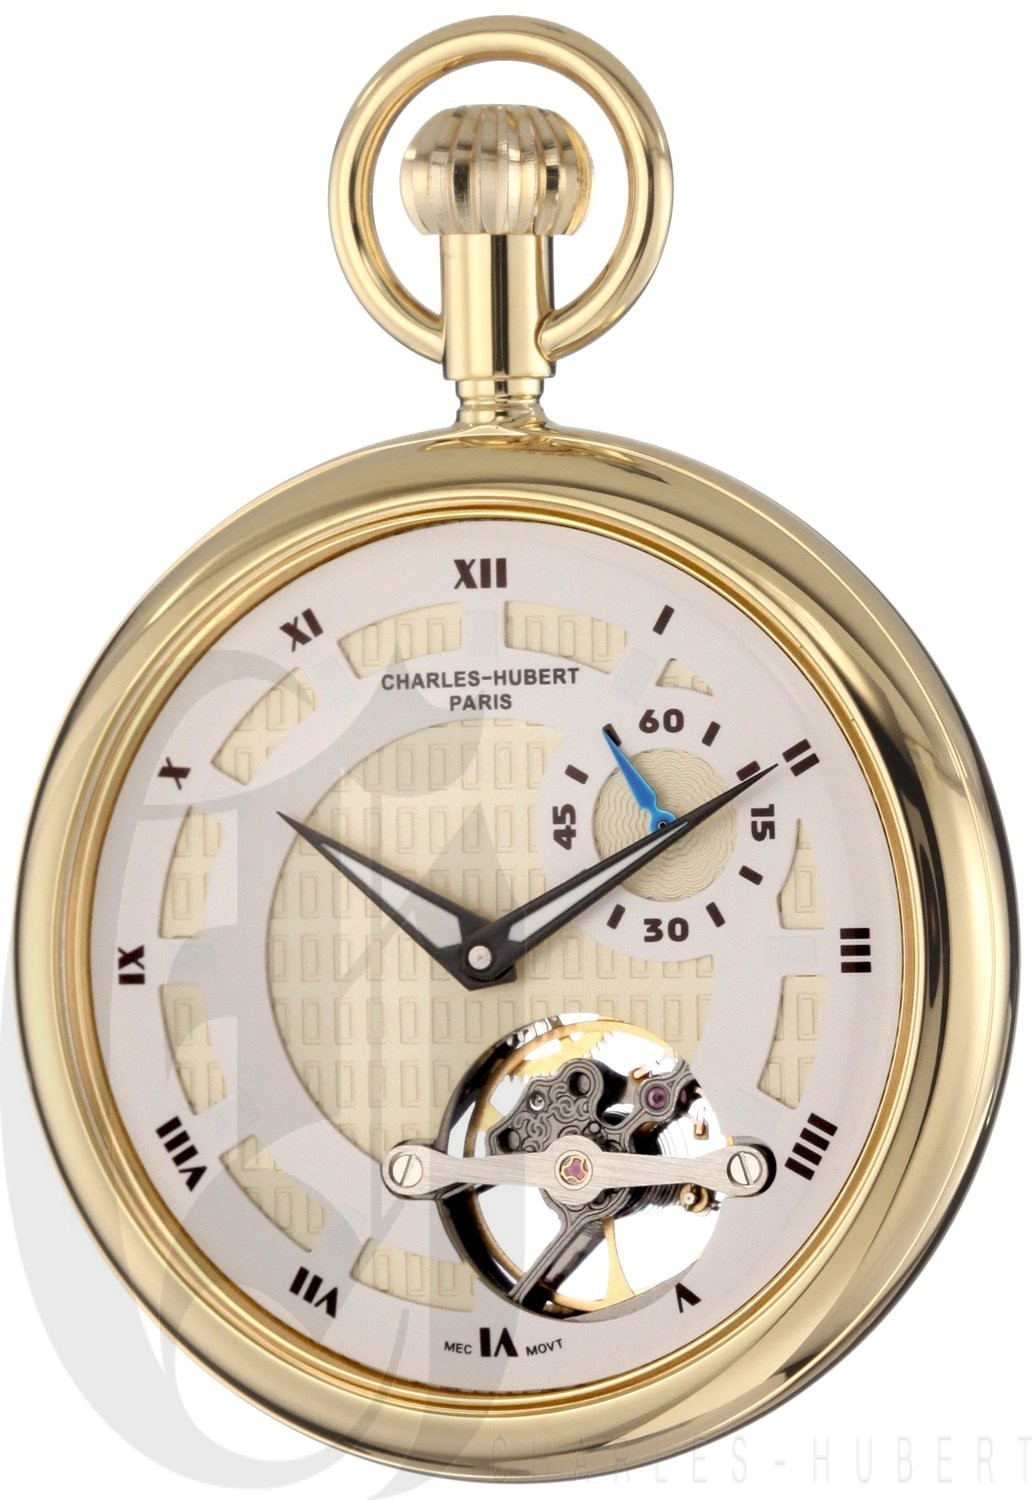 Charles-Hubert Paris Gold-Plated Open Face Mechanical Pocket Watch